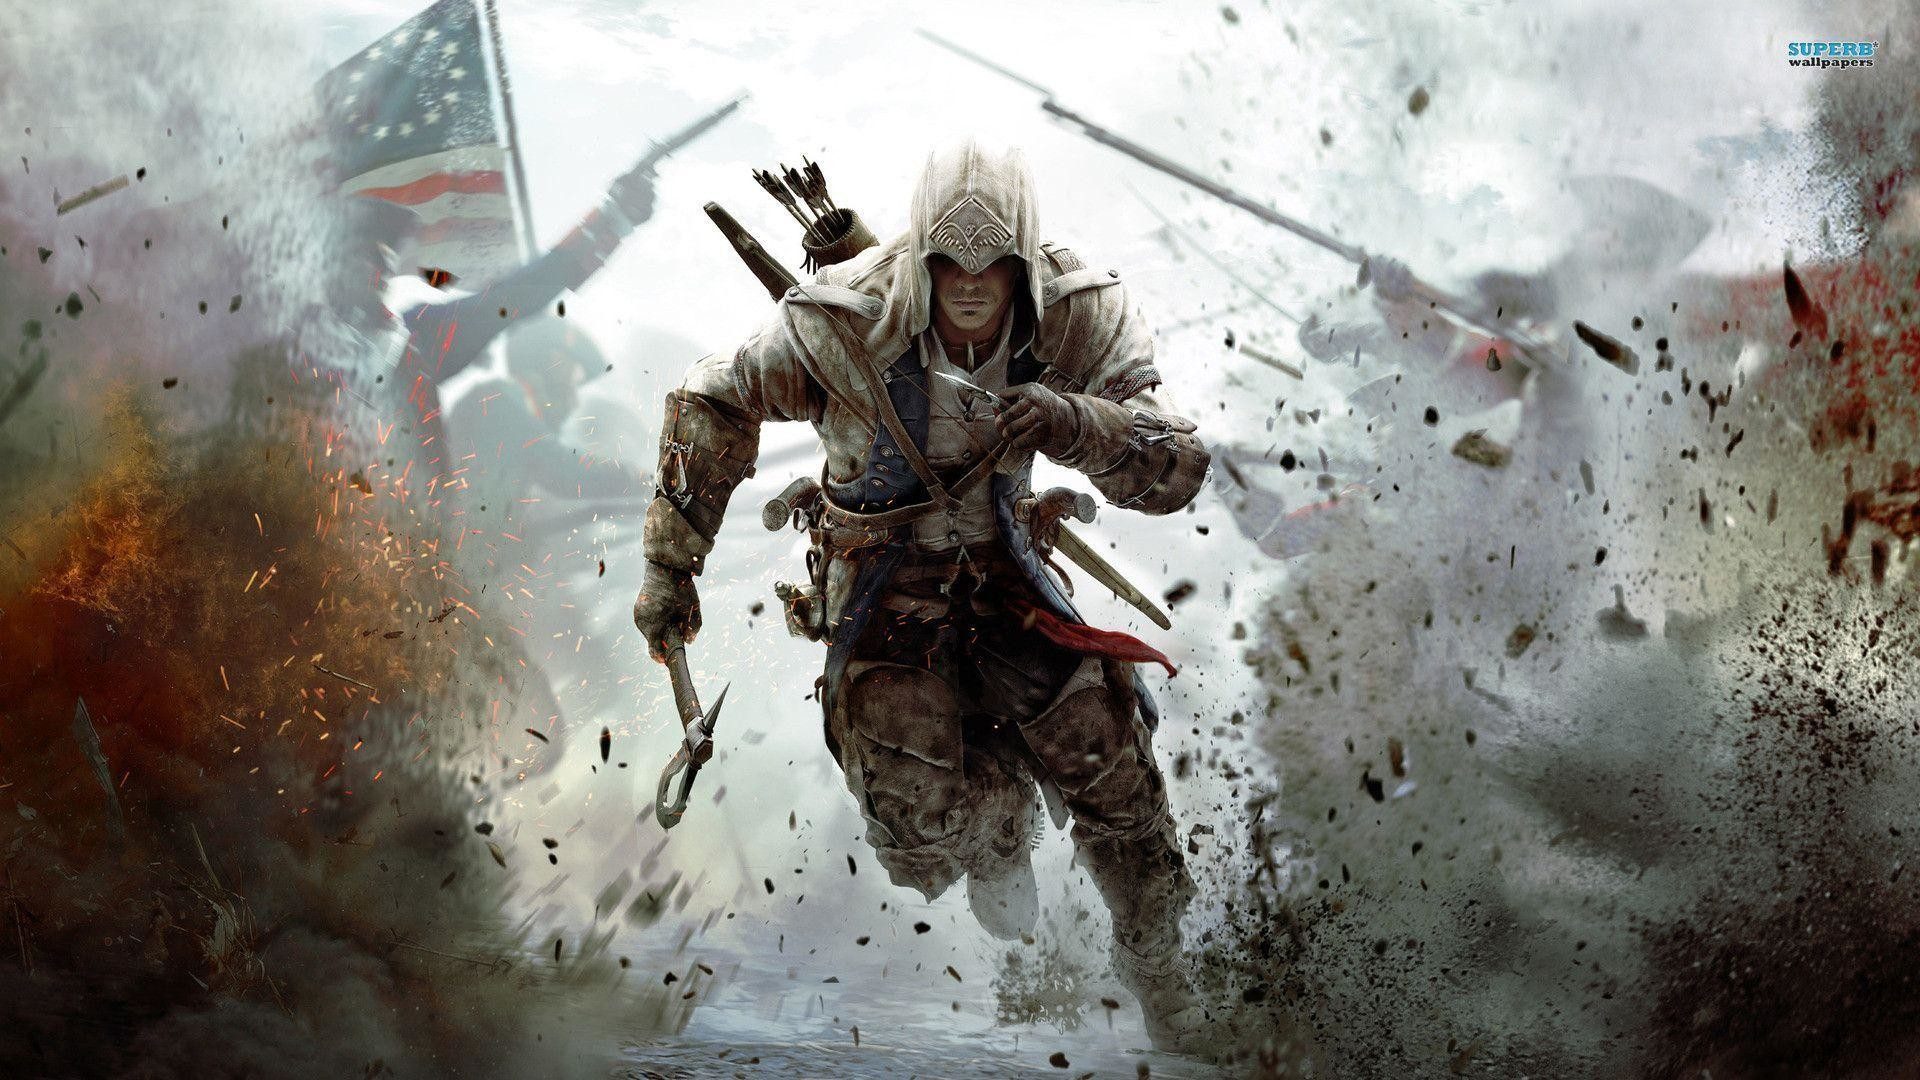 1920x1080 Assassin's Creed III wallpaper - Game wallpapers - #